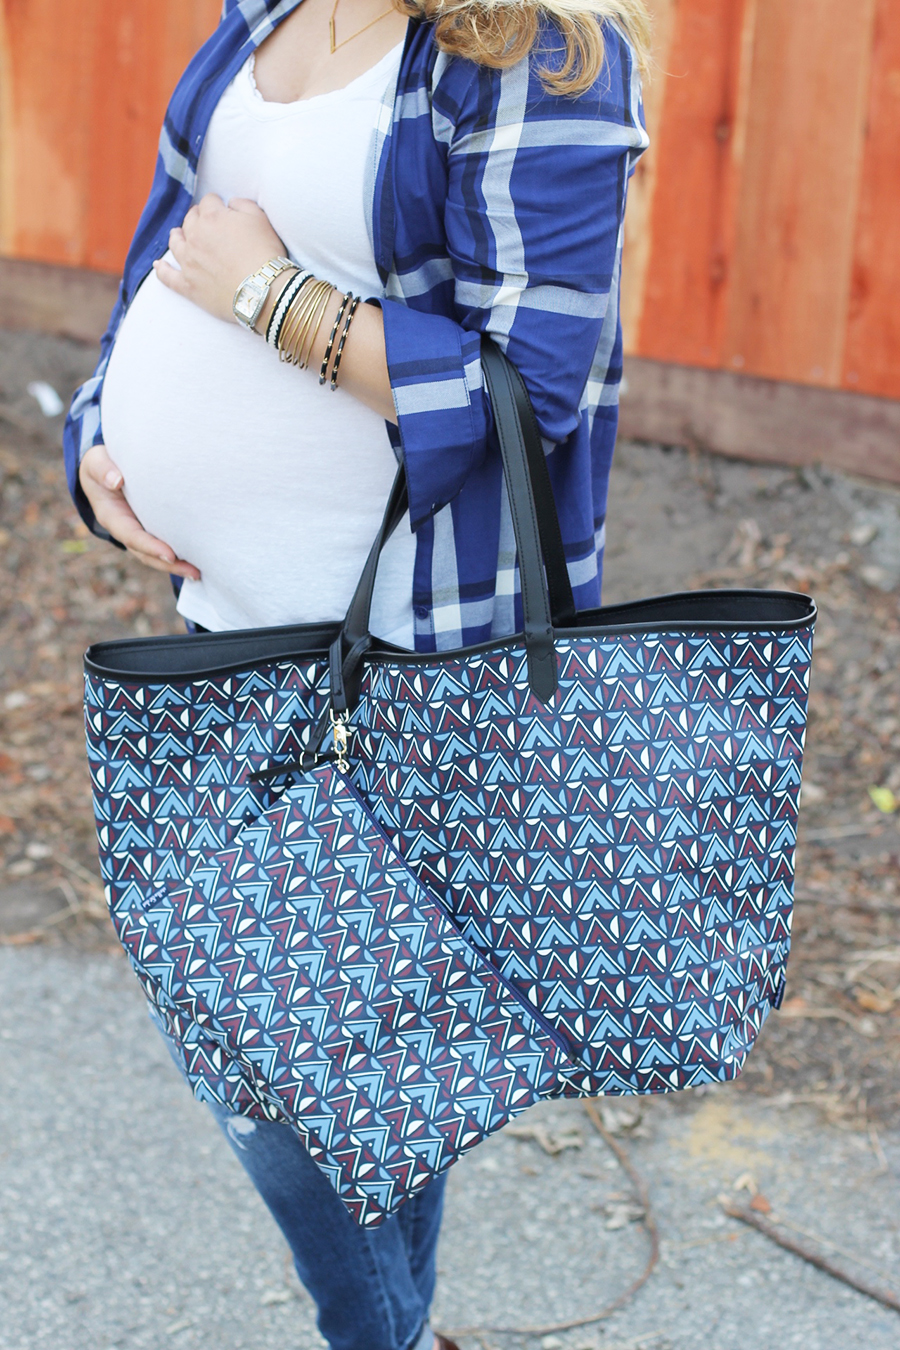 Plaid Shirtdress-Maternity Style-Styling Your Baby Bump-Styling Tips-Pregnancy Style-Have Need Want 2